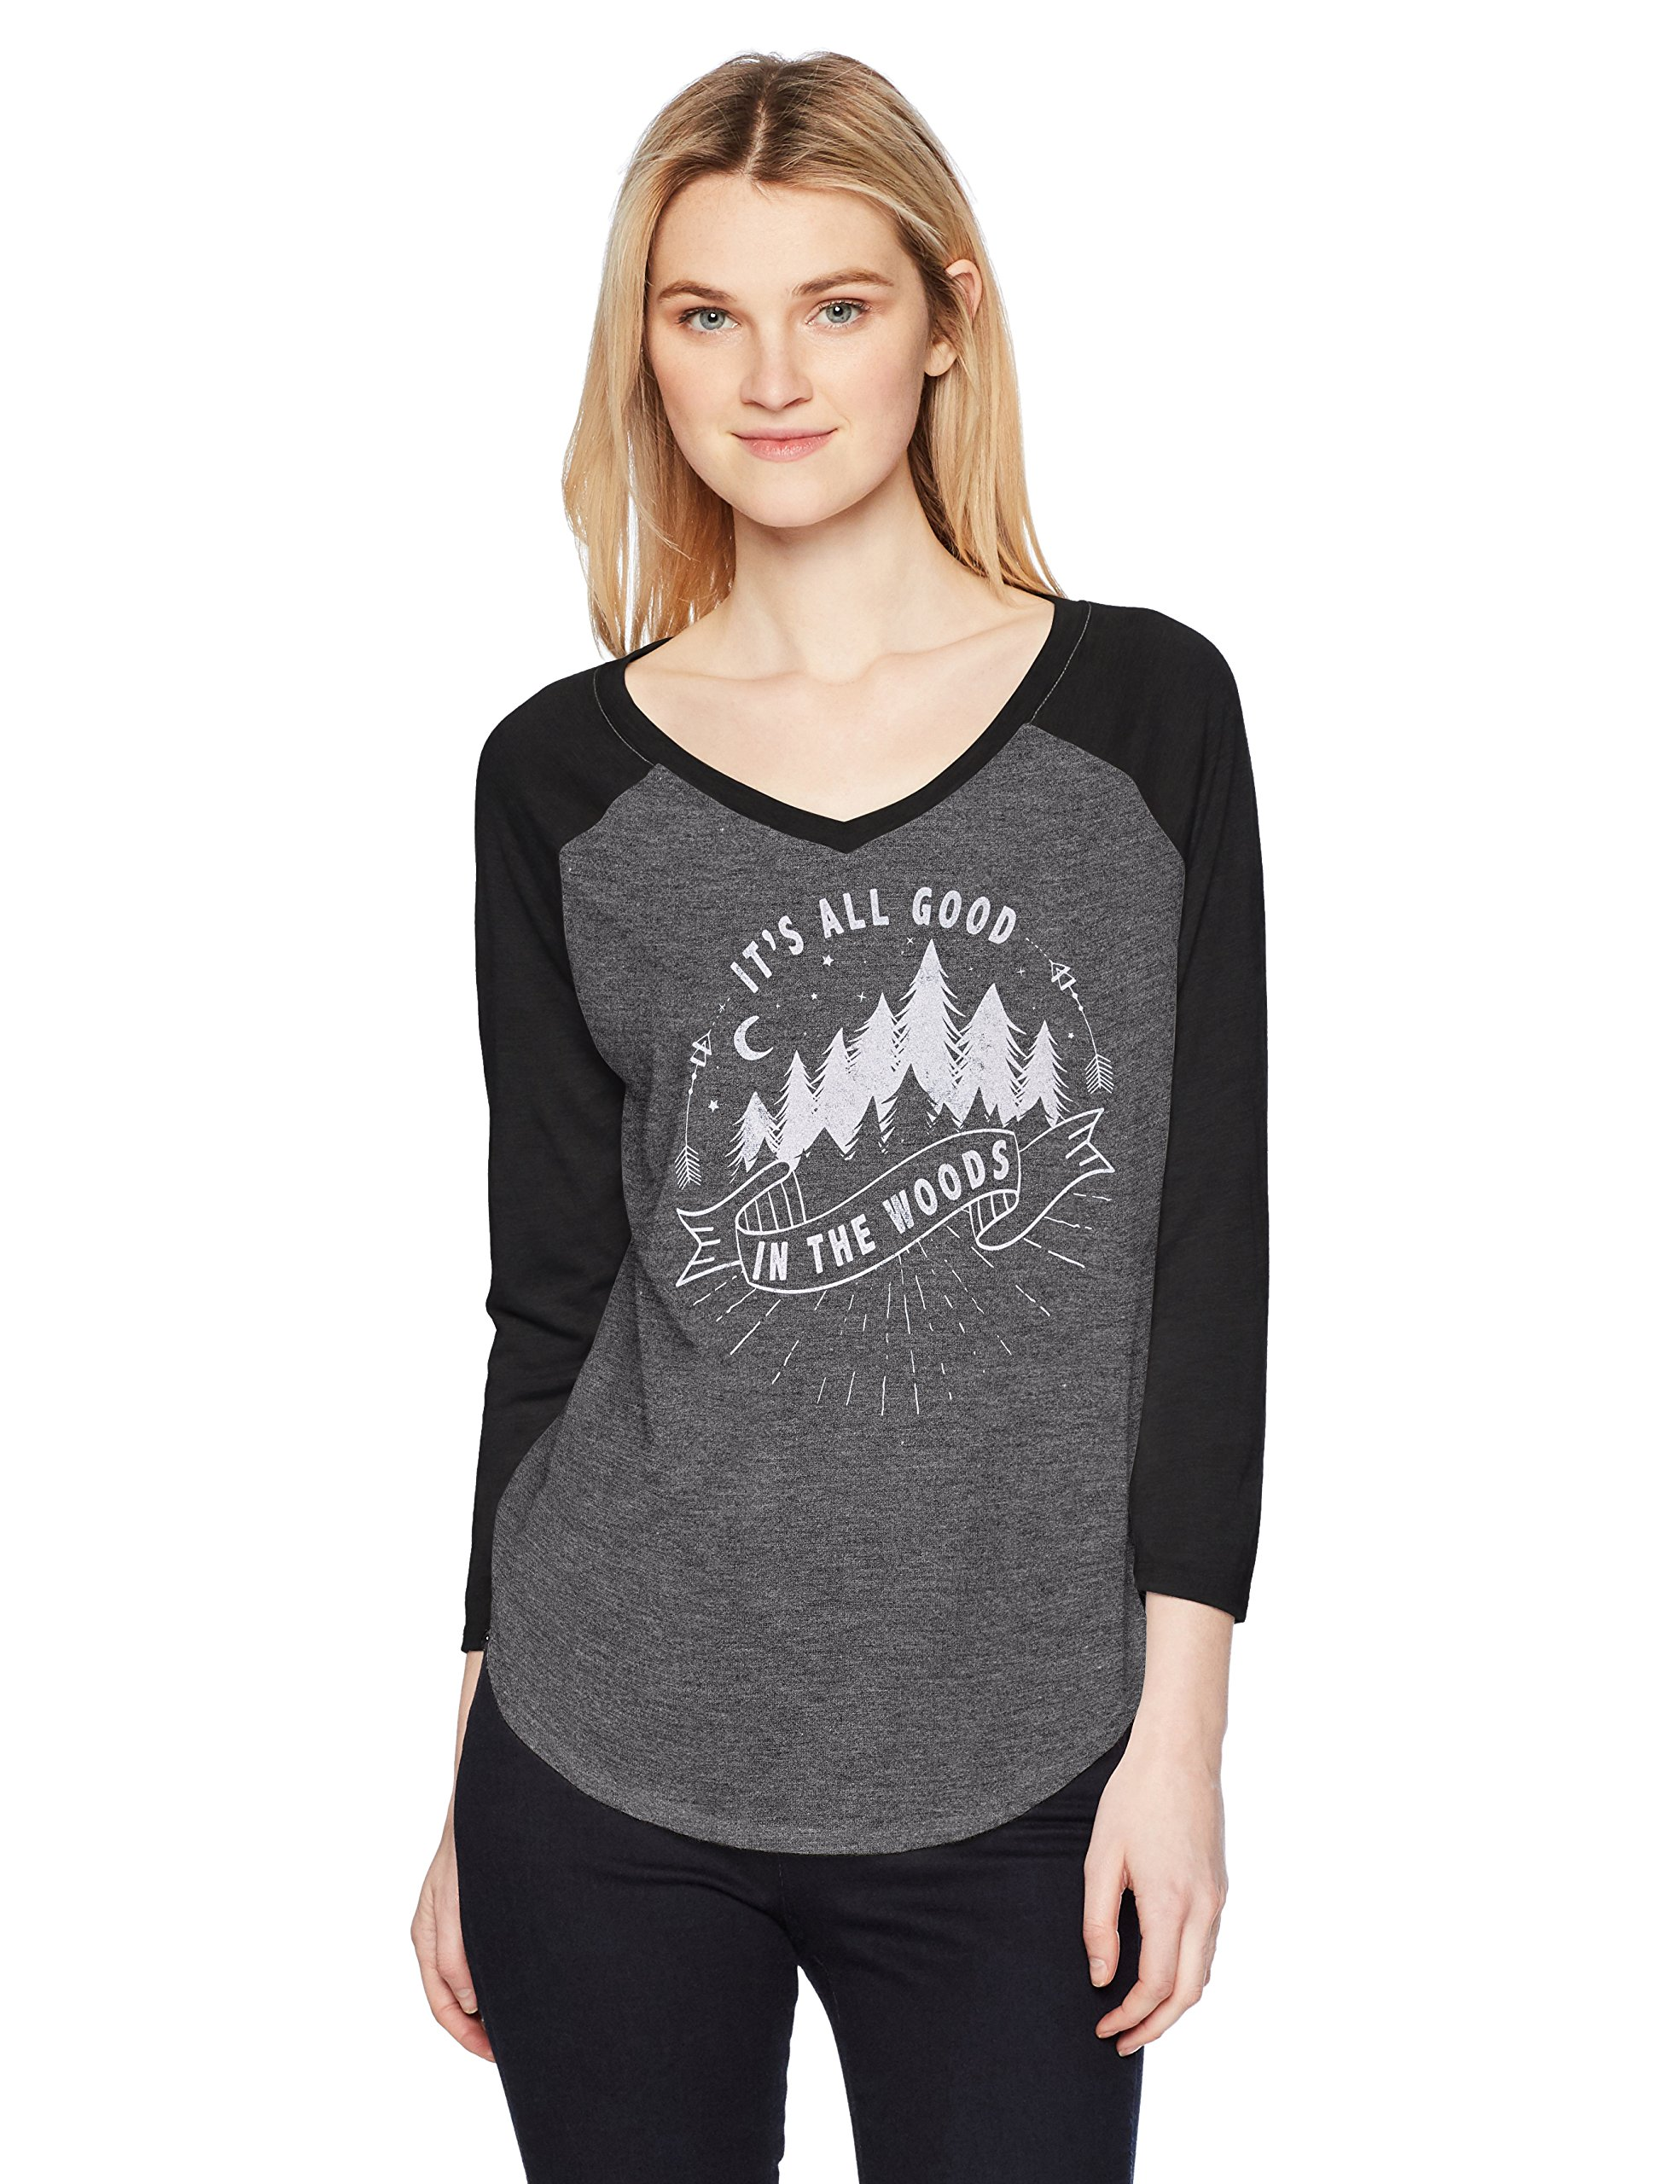 Fifth Sun Women's Desert Dream Graphic Fashion Ranglan Top, Multi/Color//All Good in The Woods, XX-Large